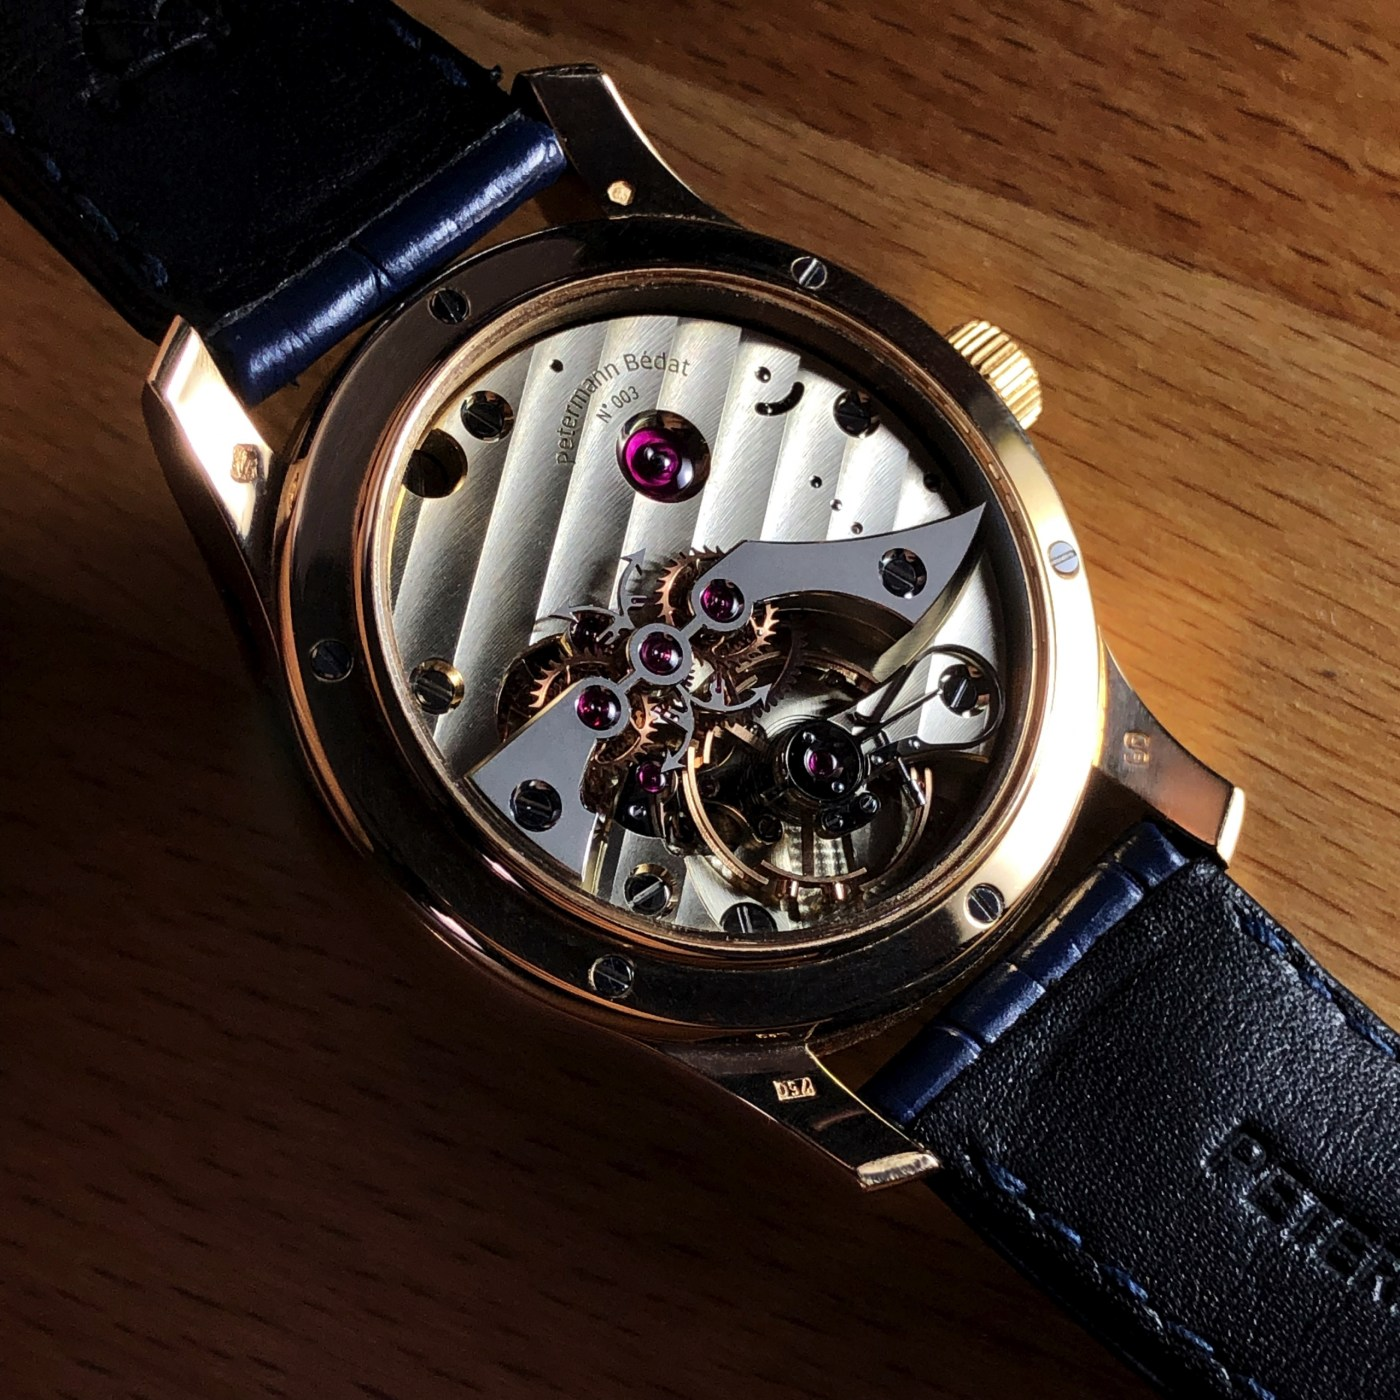 Petermann Bedat 1967 caseback